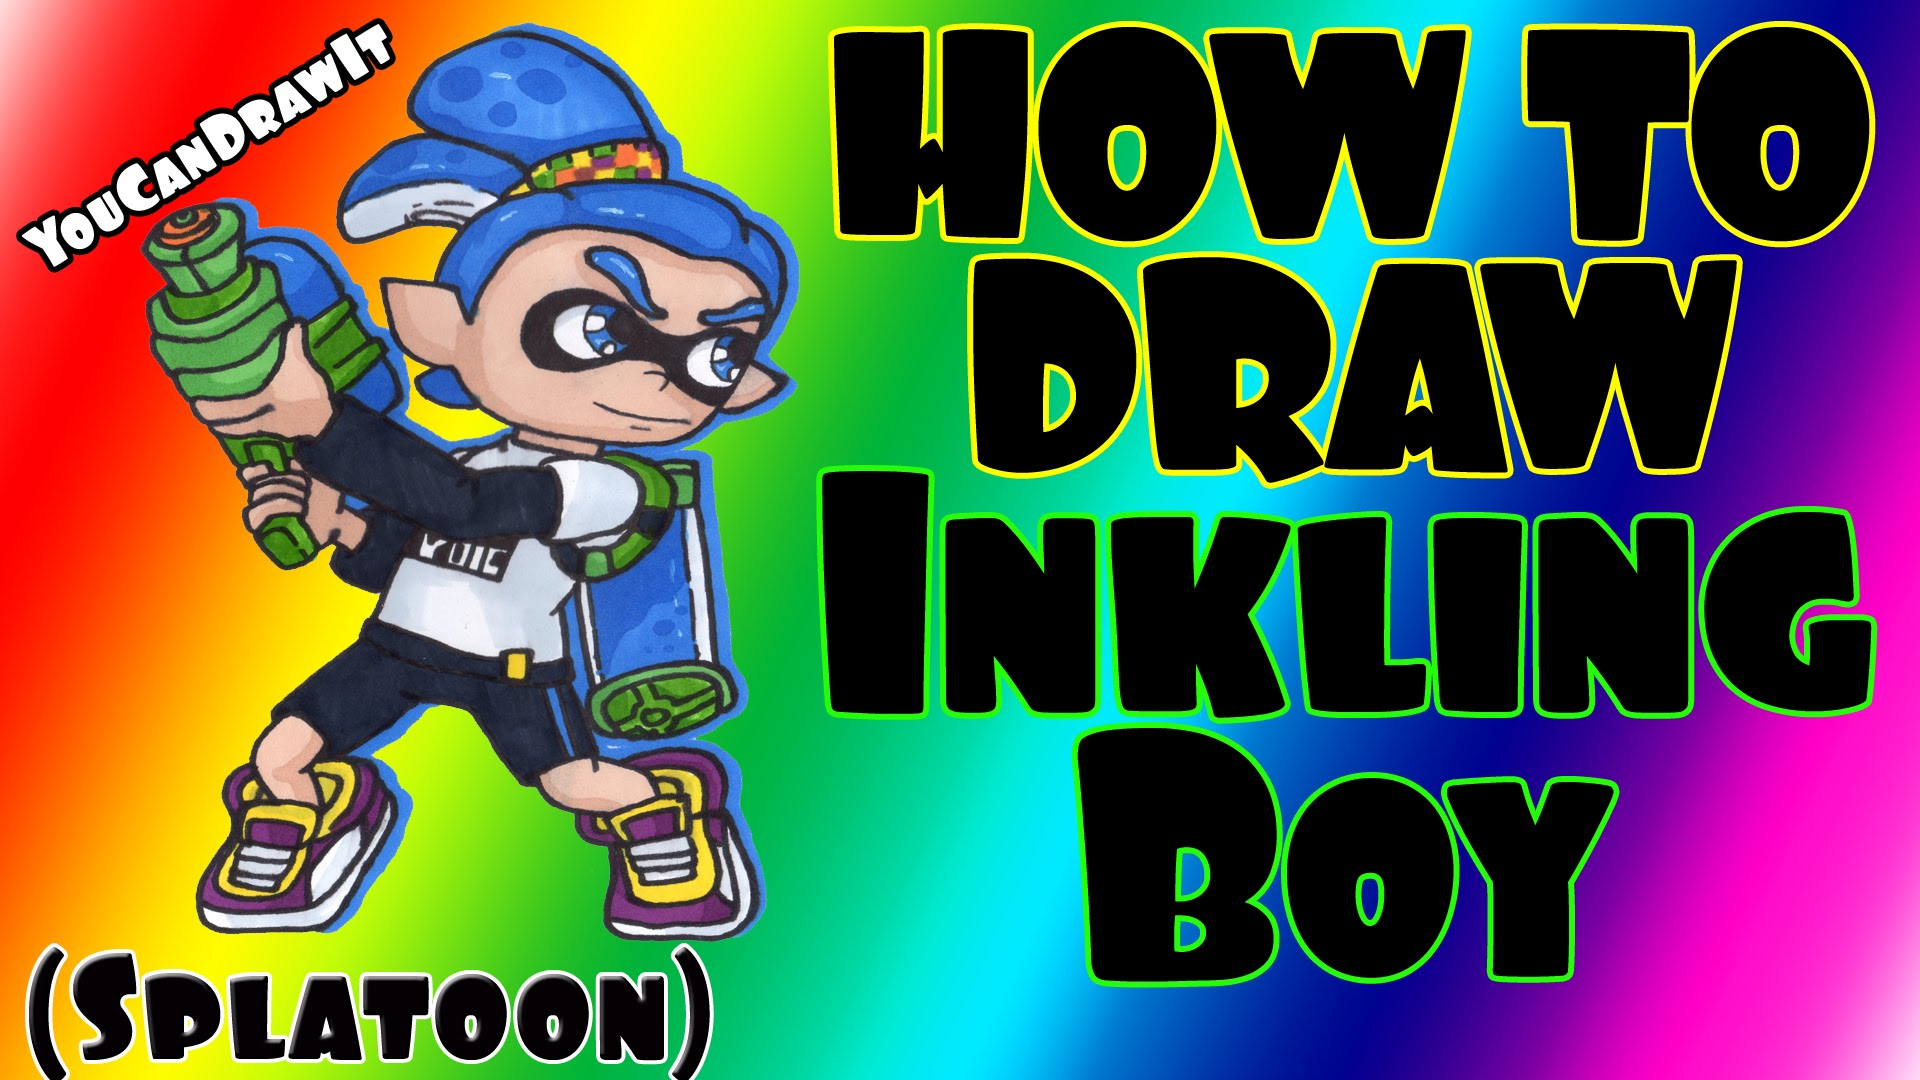 How To Draw Inkling Boy from Splatoon ✎ YouCanDrawIt ツ 1080p HD.